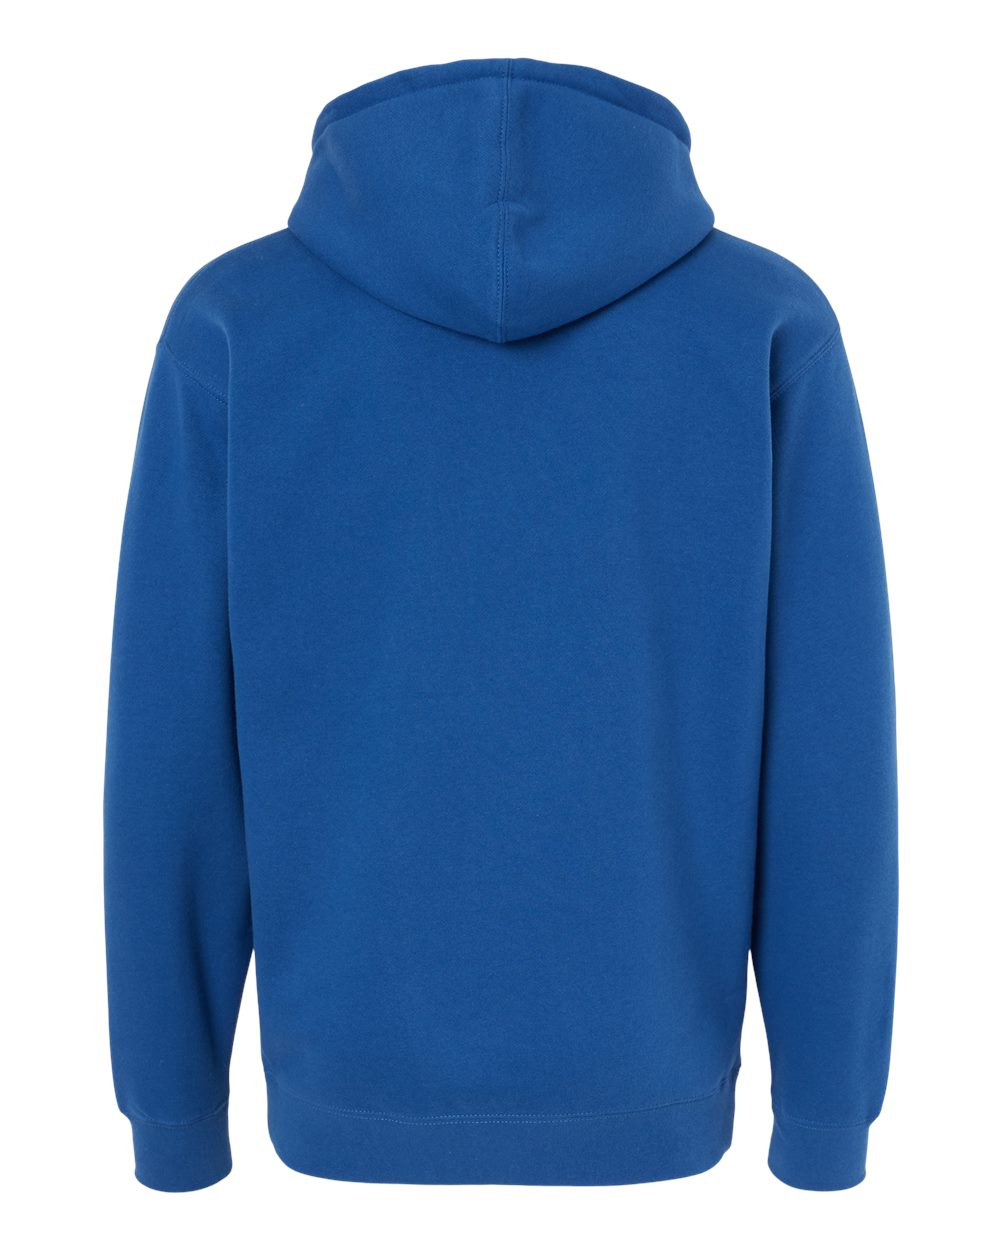 Independent-Trading-Co-Mens-Hooded-Pullover-Sweatshirt-IND4000-up-to-3XL miniature 64